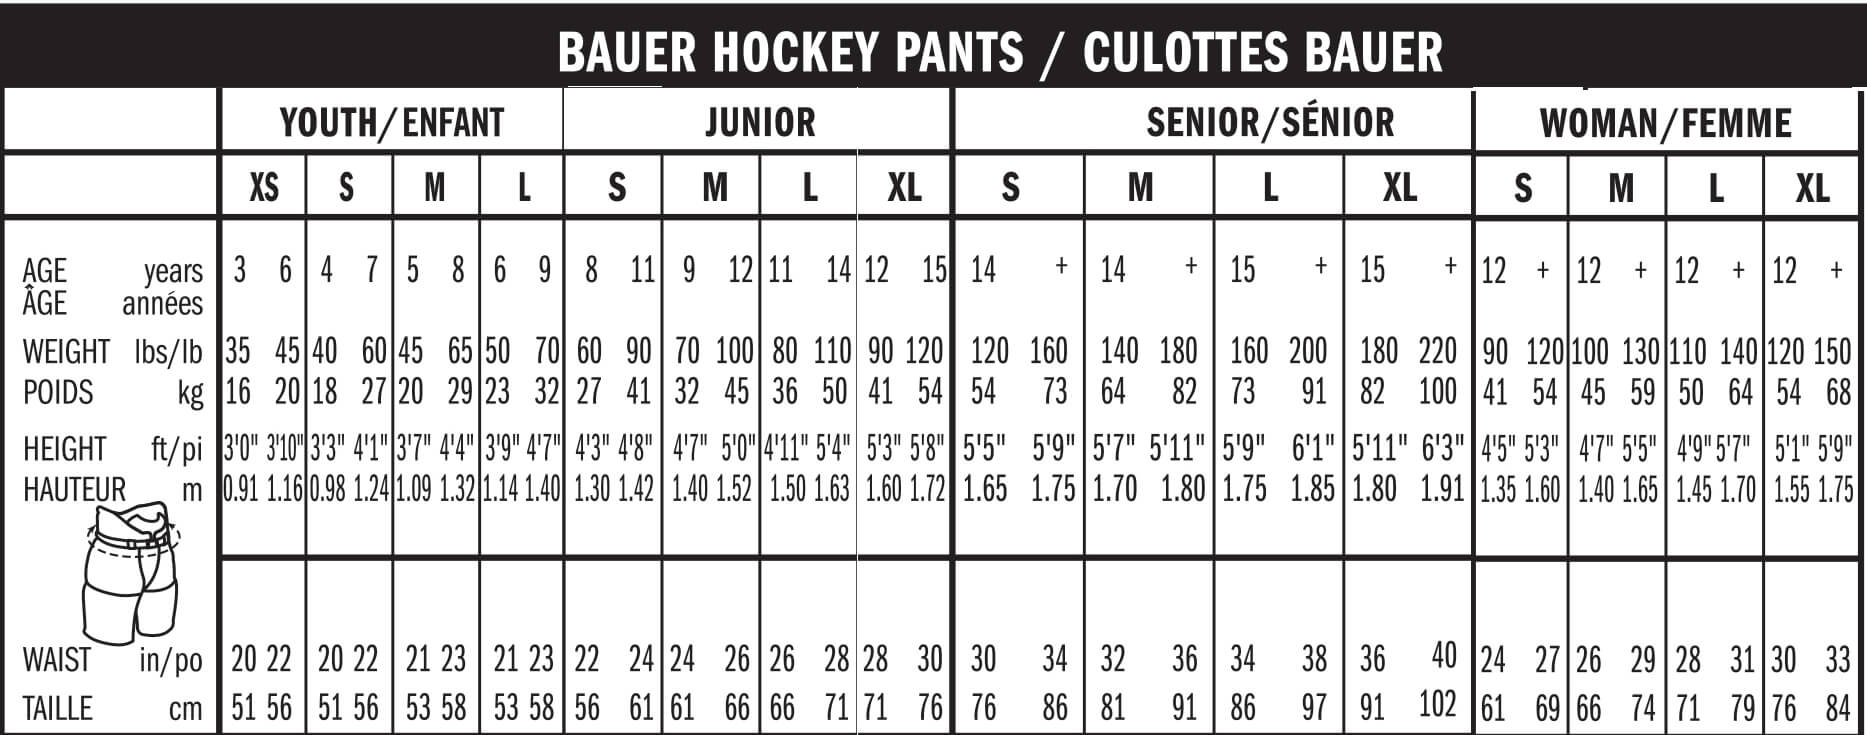 Maattabel  Bauer Hockey pants